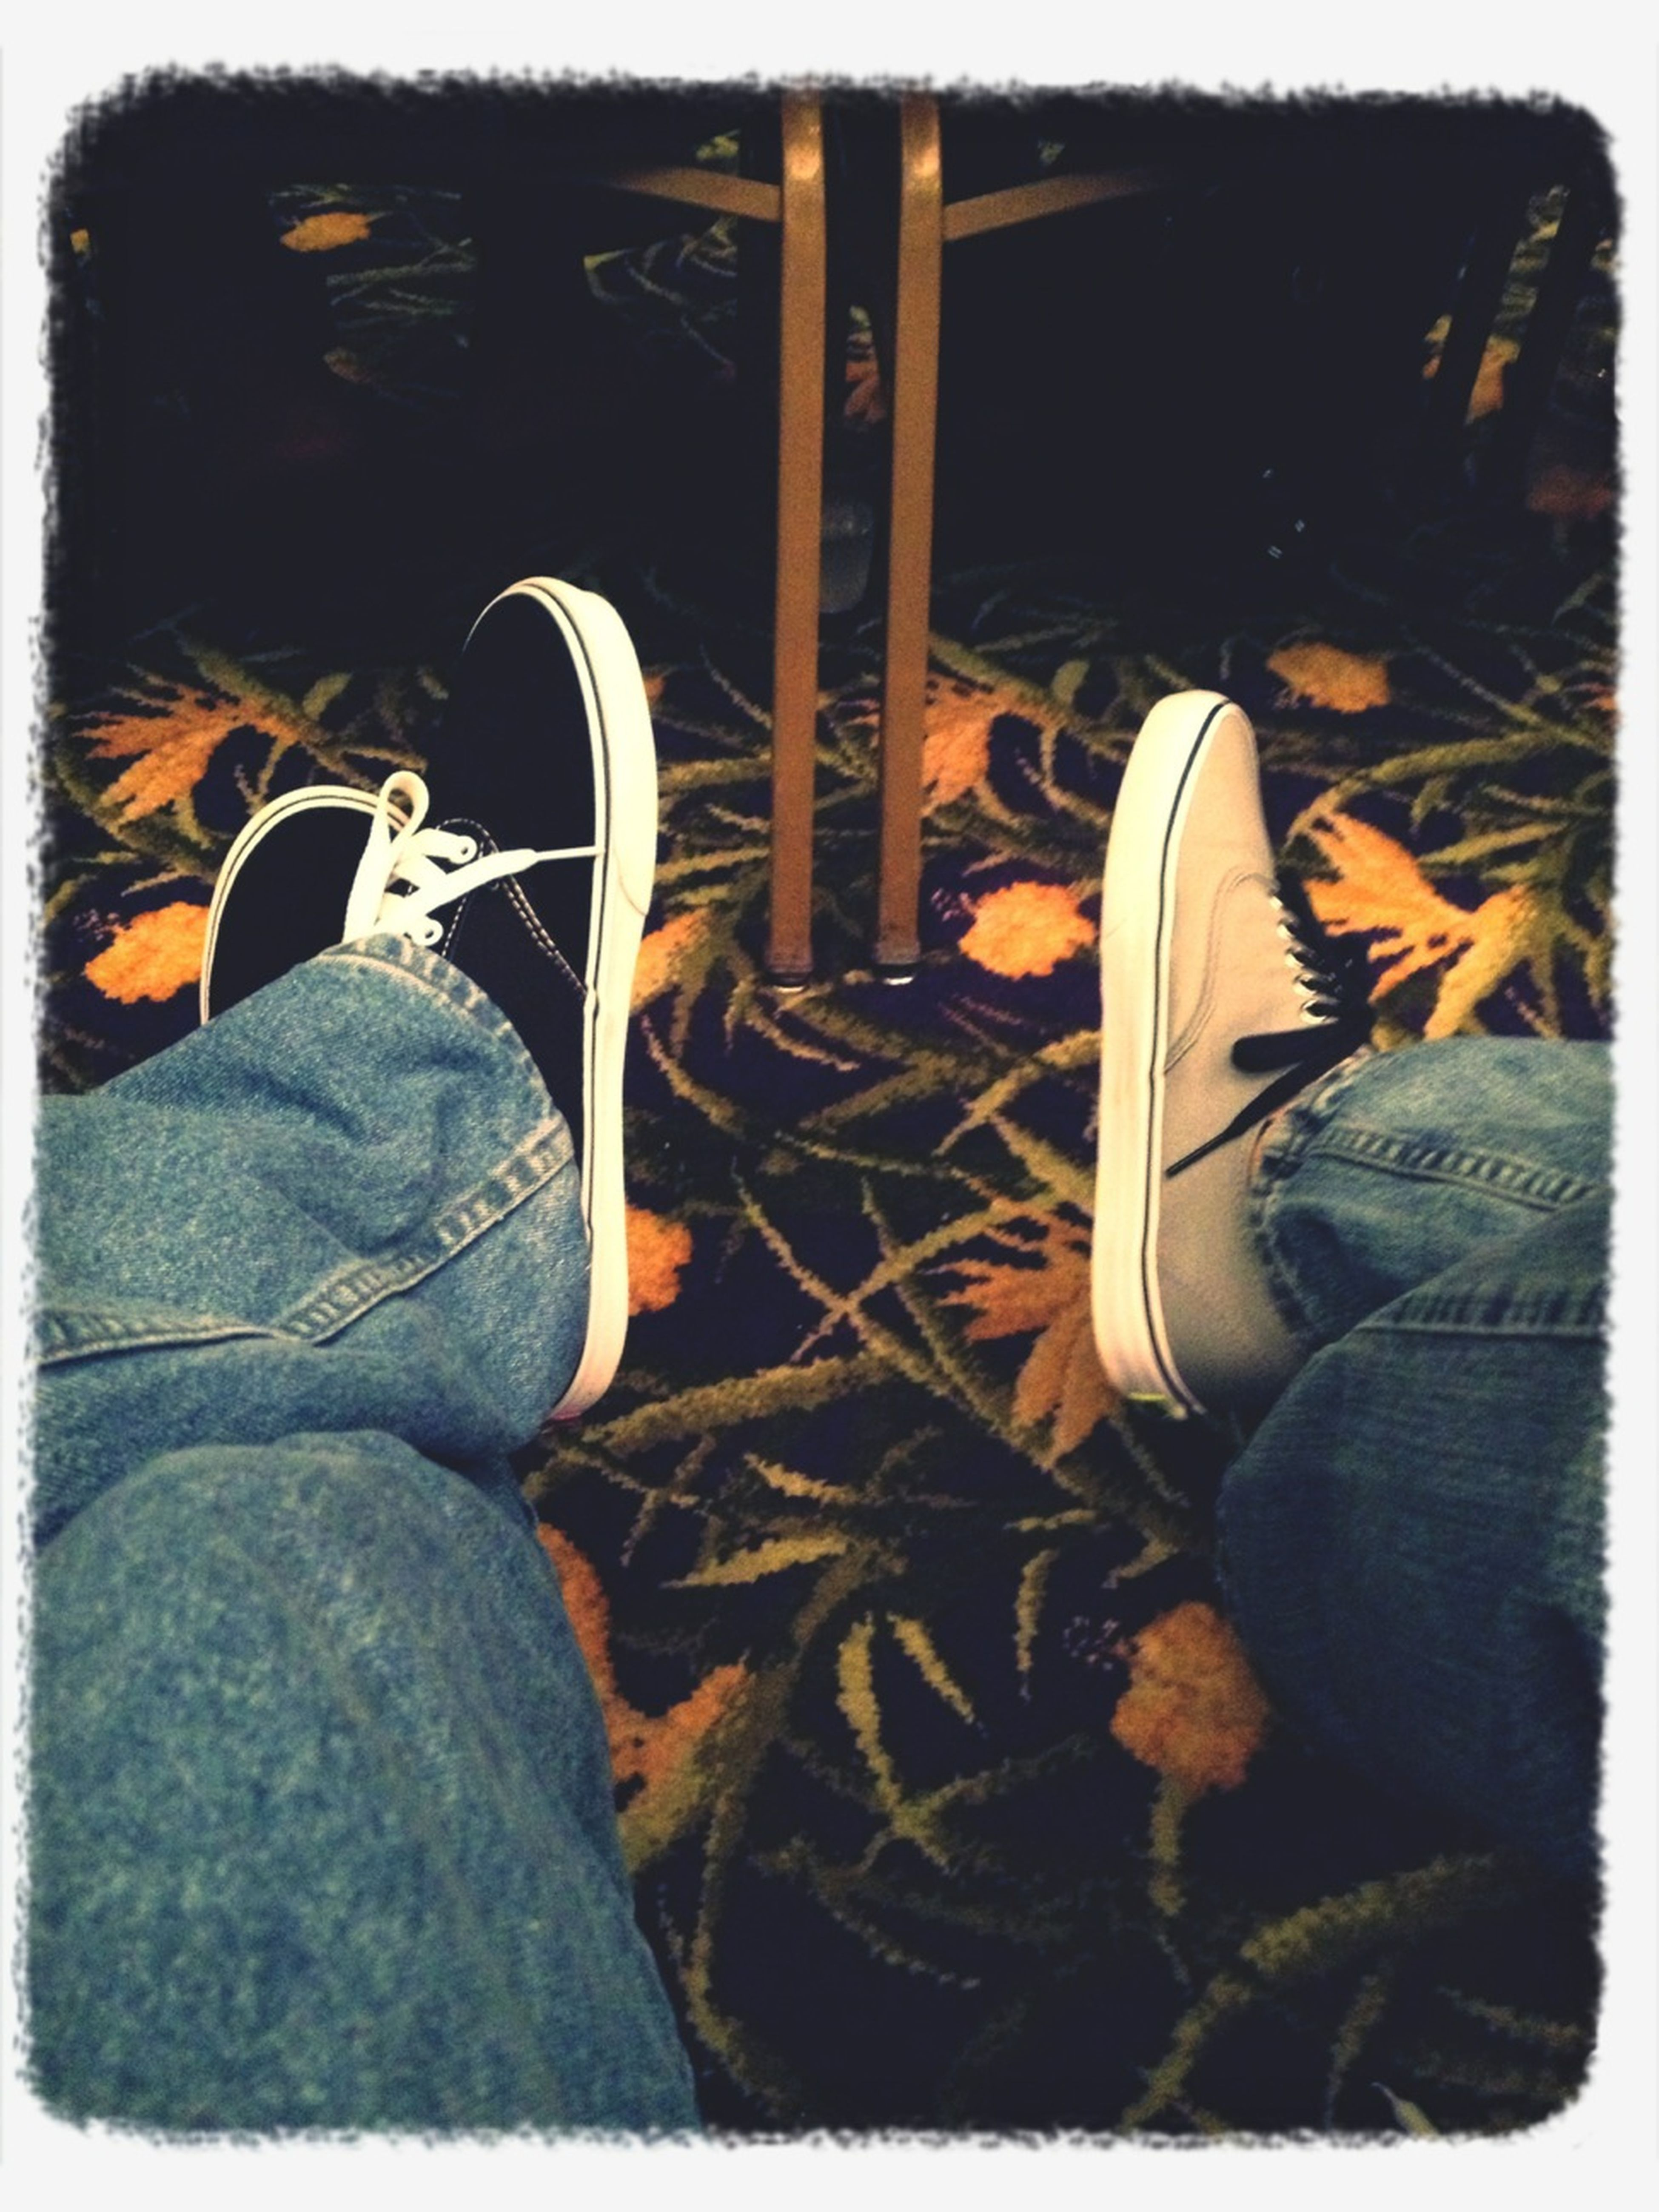 Got our vans on, but they look like sneakers.